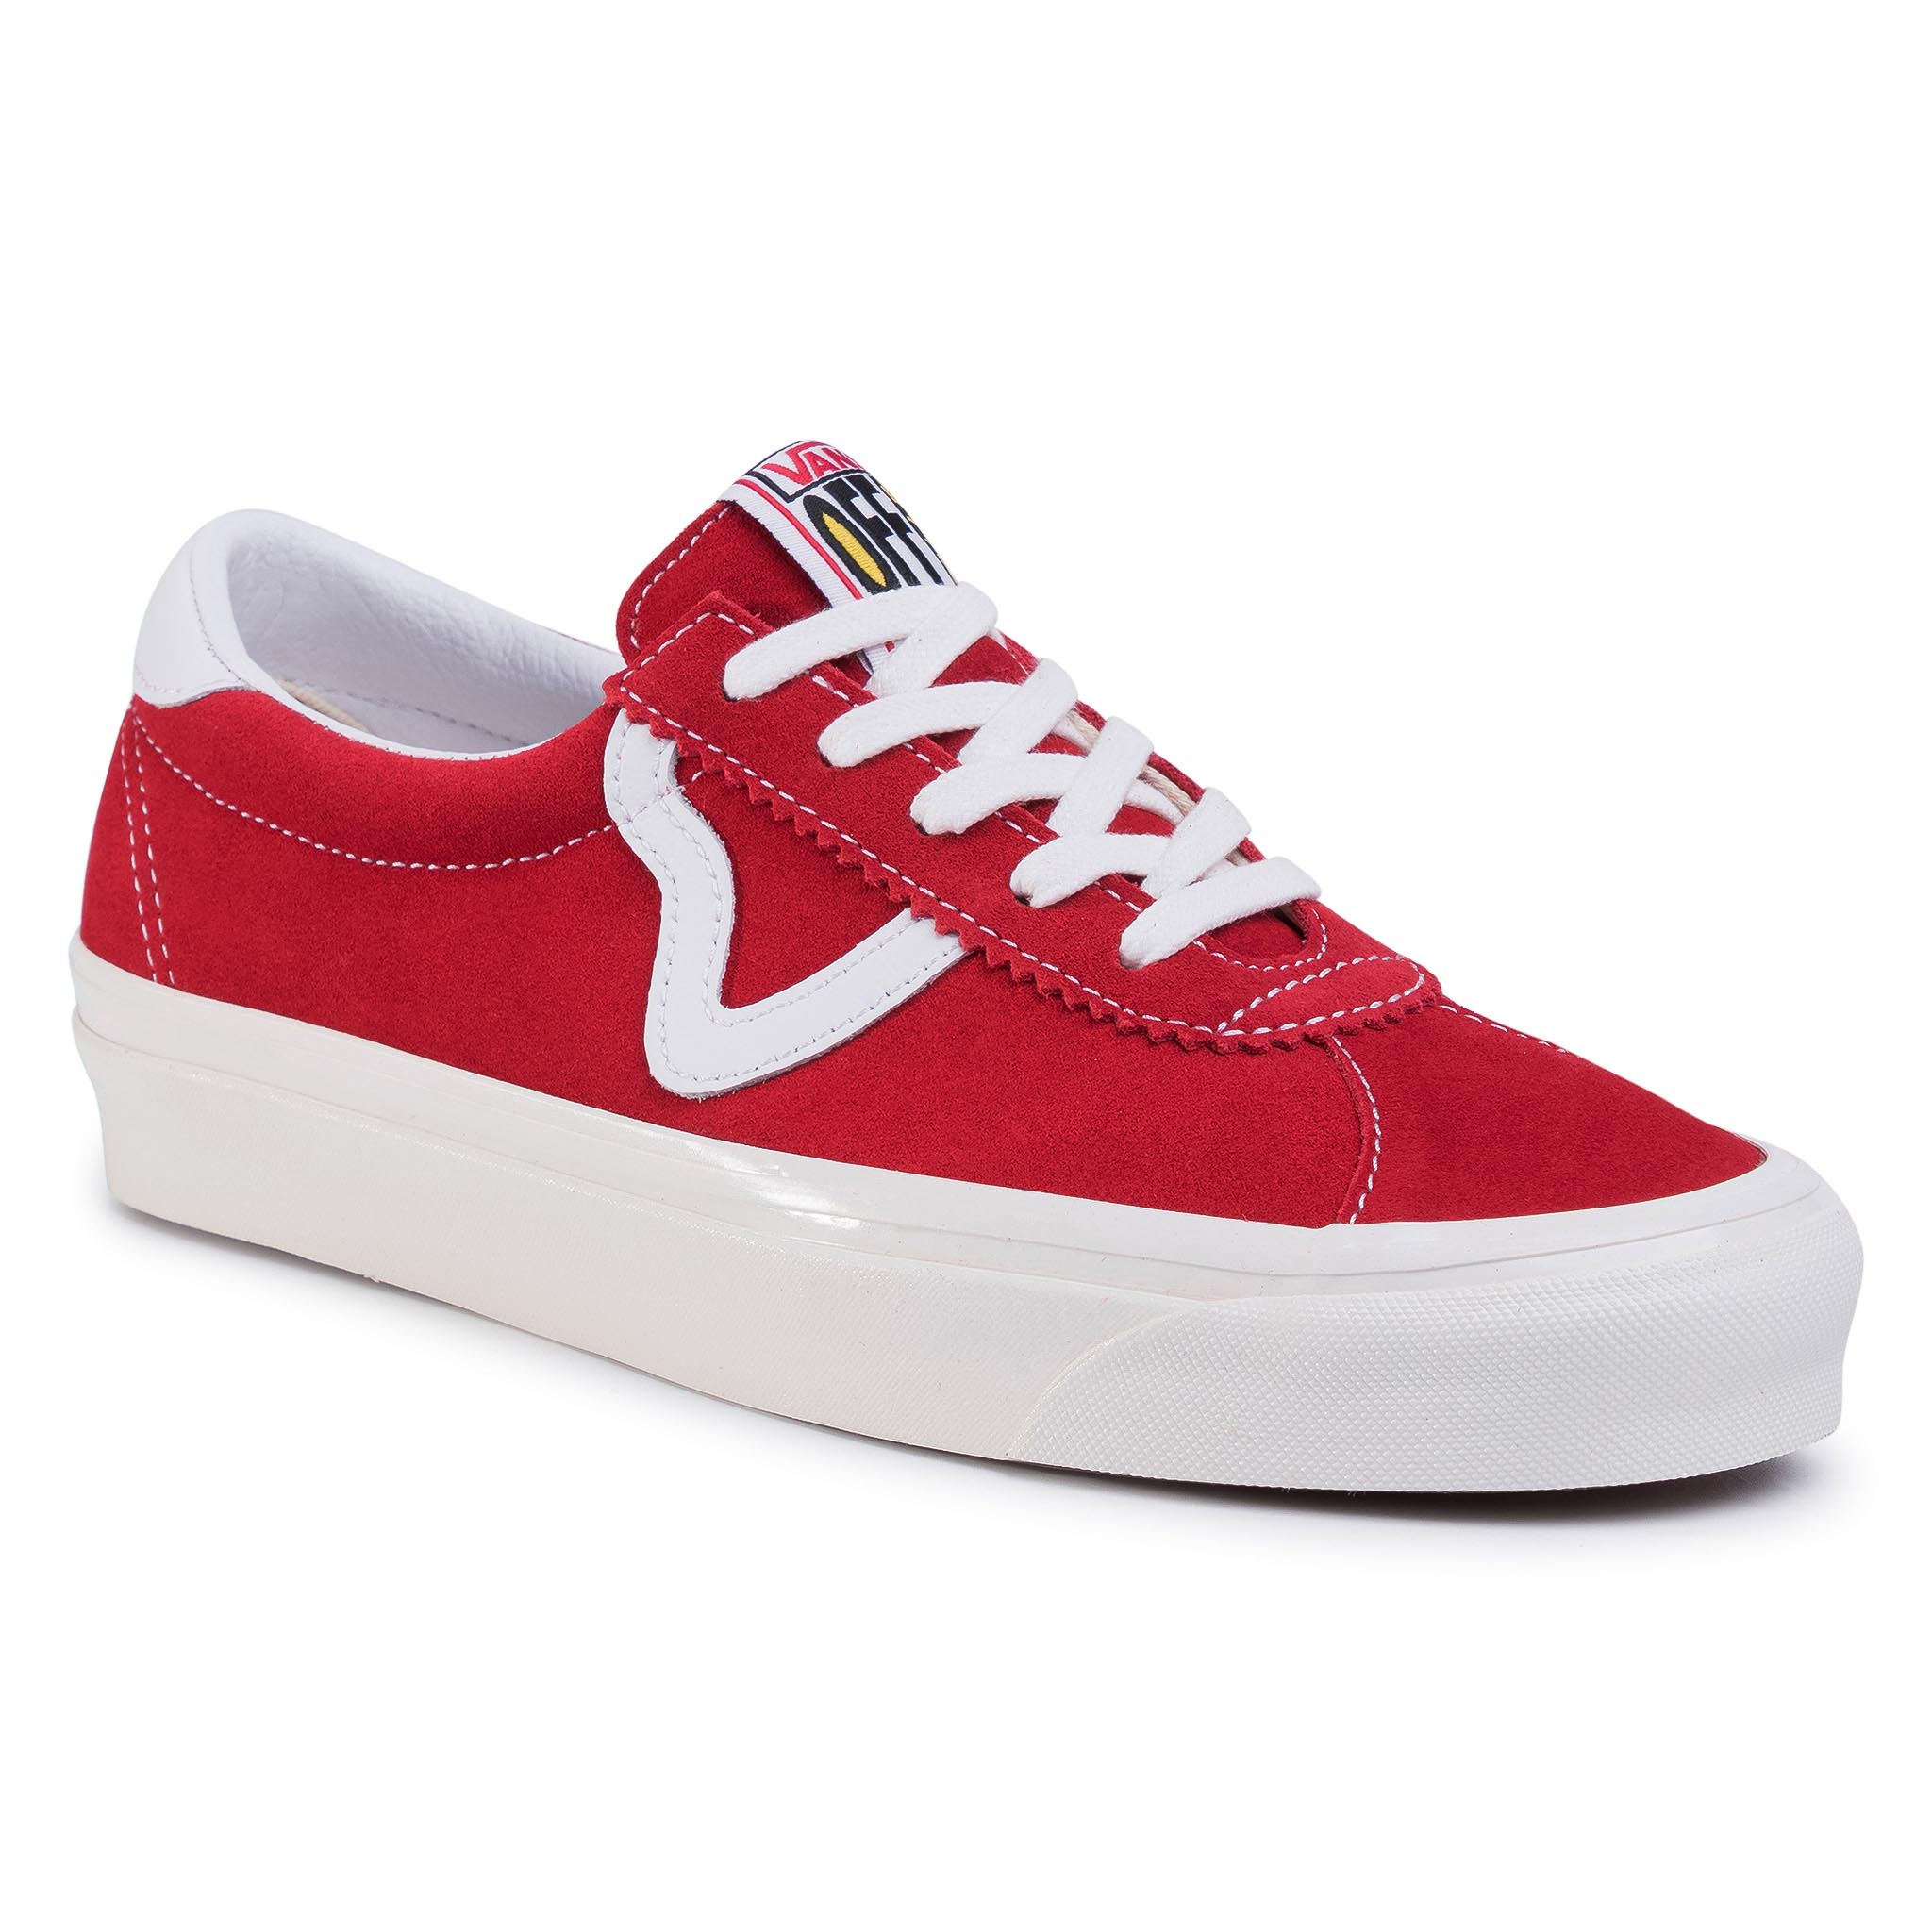 Teniși VANS - Style 73 Dx VN0A3WLQVTM1 (Anaheim Factory) Og Red imagine